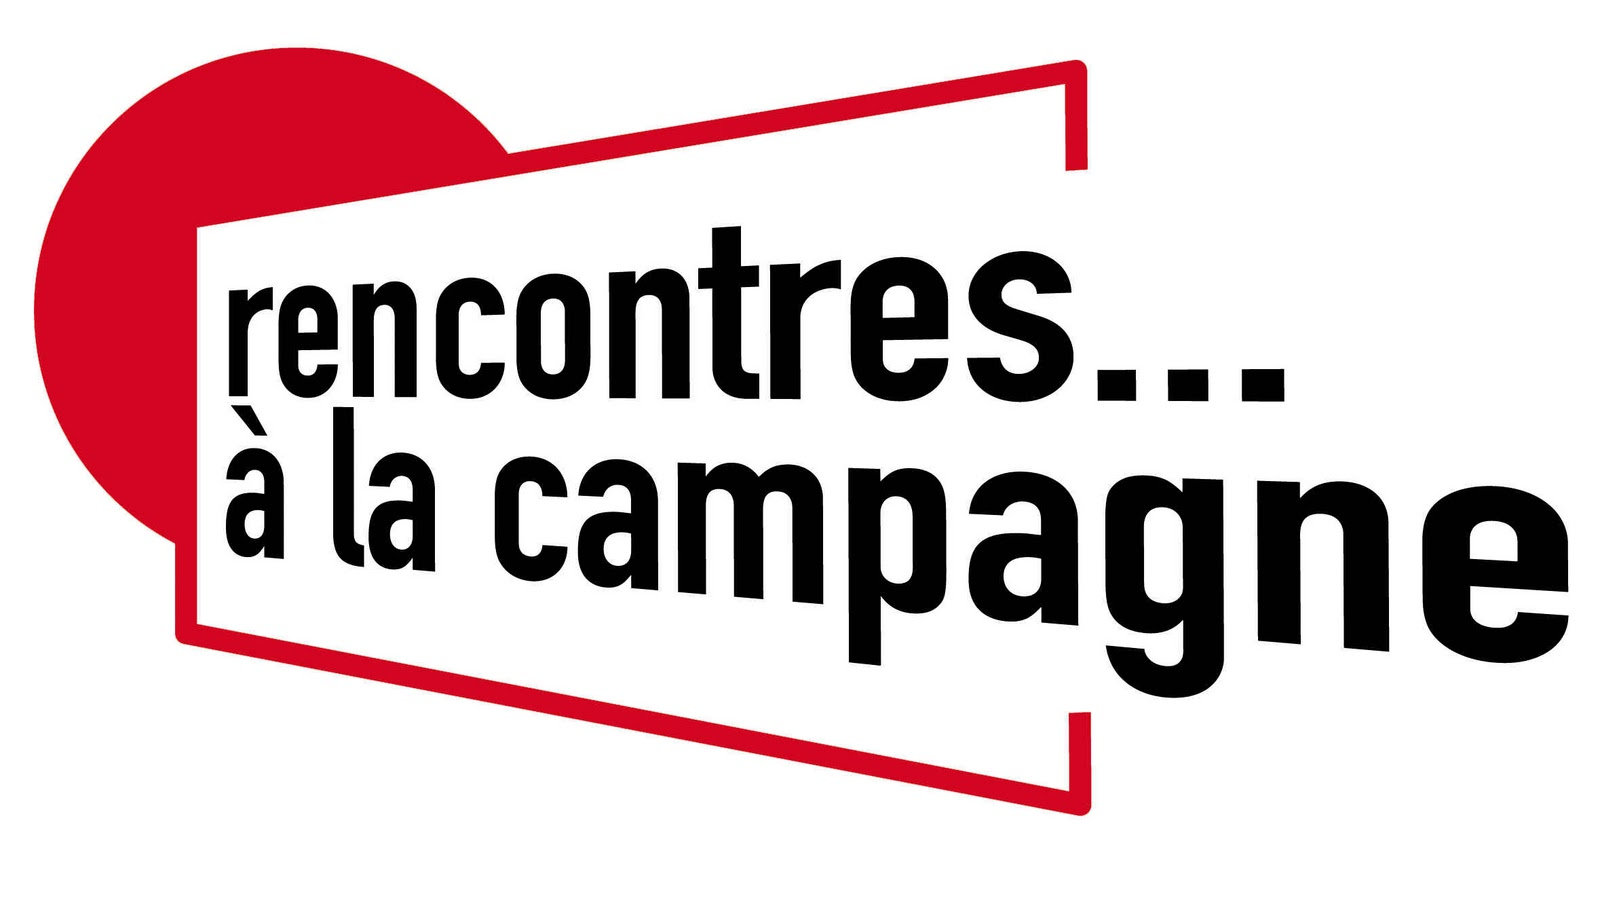 Association rencontres a la campagne